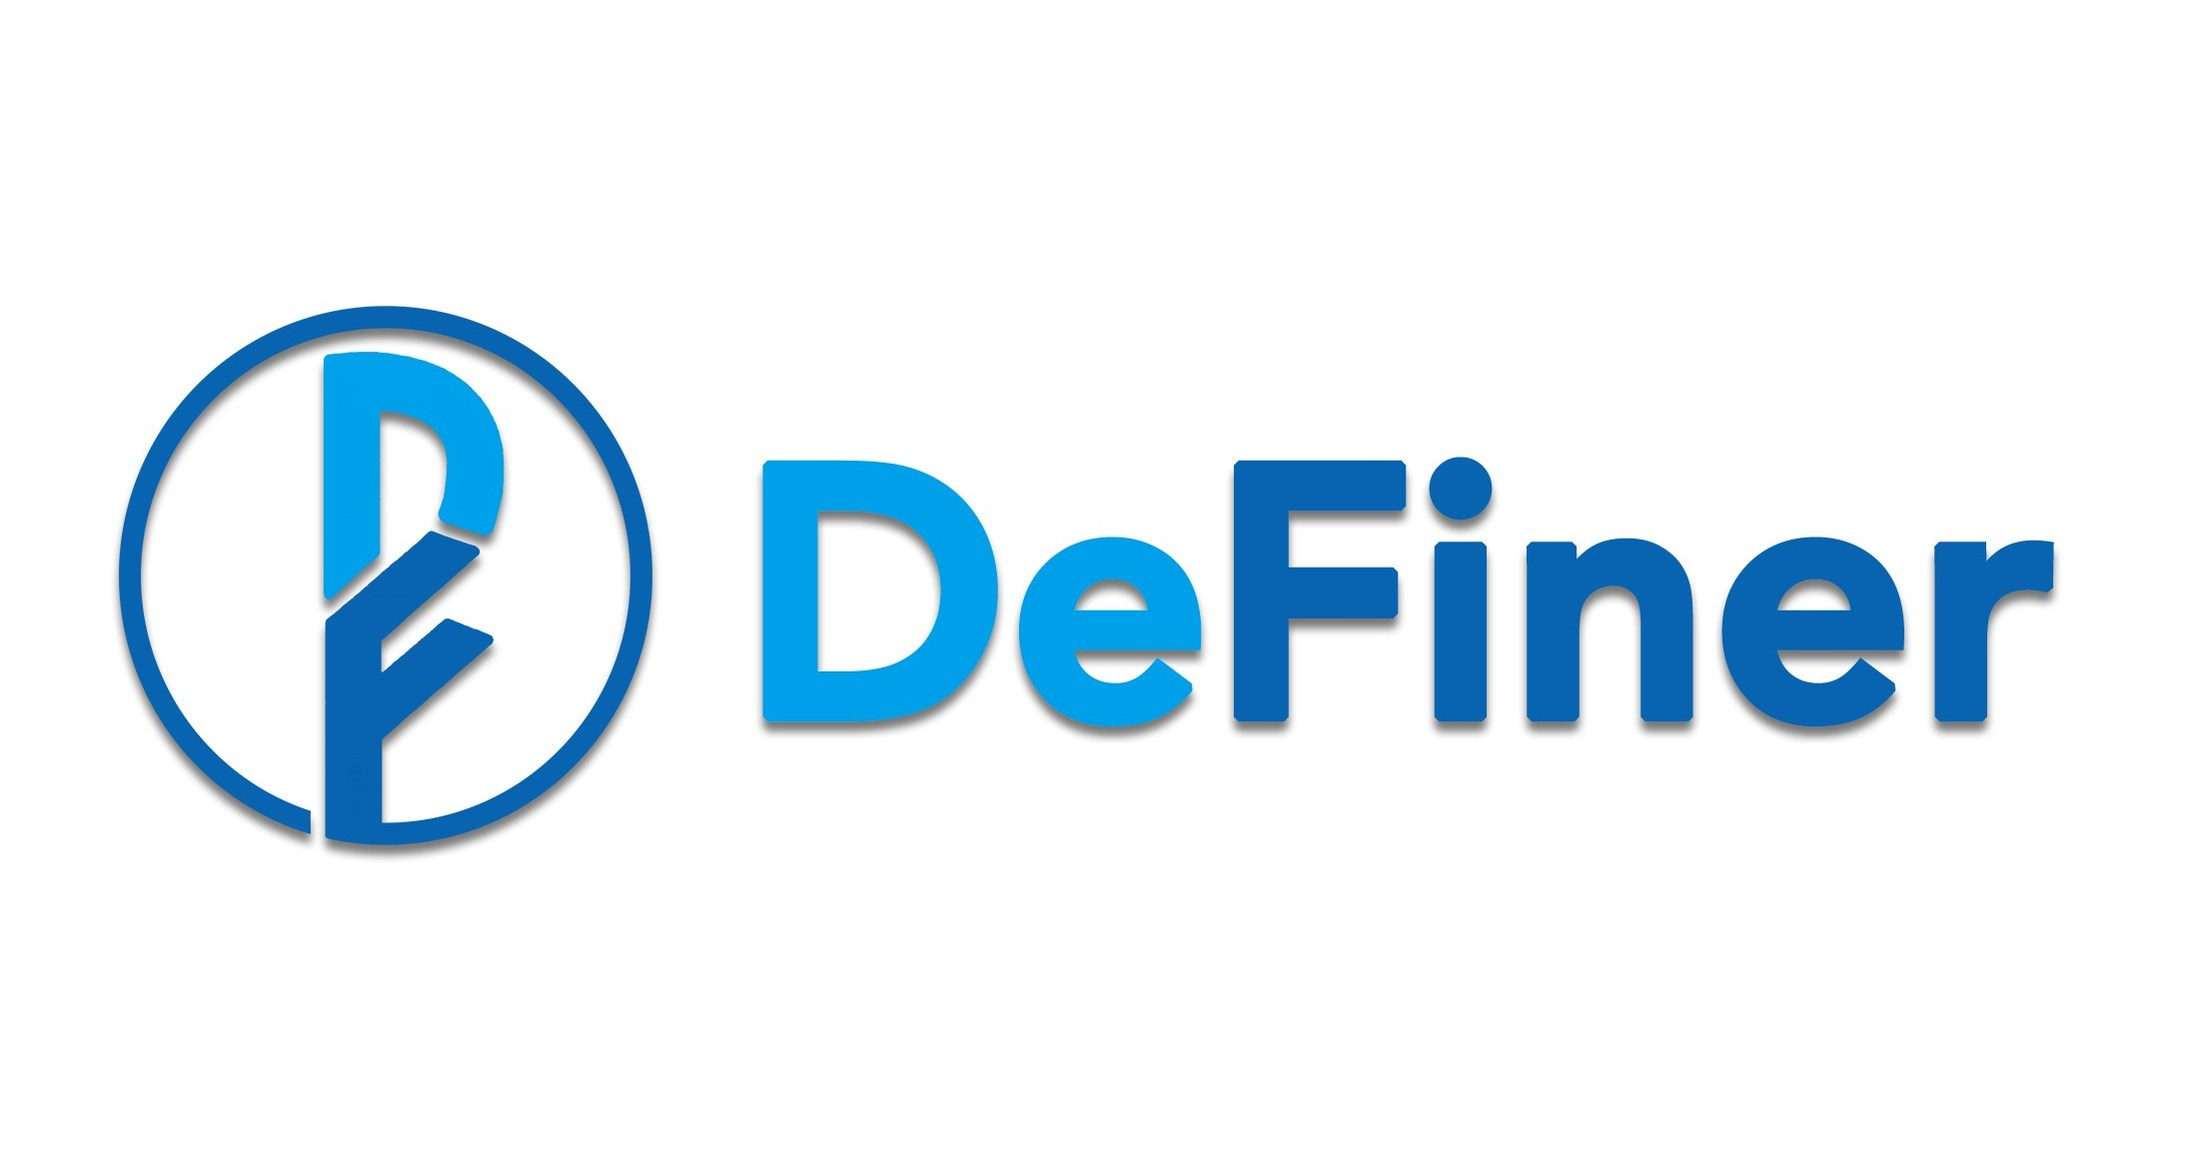 MINNEAPOLIS, Sept. 22, 2020 /PRNewswire/ -- DeFiner, the decentralized finance network for crypto savings, loans, and payments, has announced a new investment from Alphabit, a fund specialising in distributed ledger technology investments. DeFiner will levera…